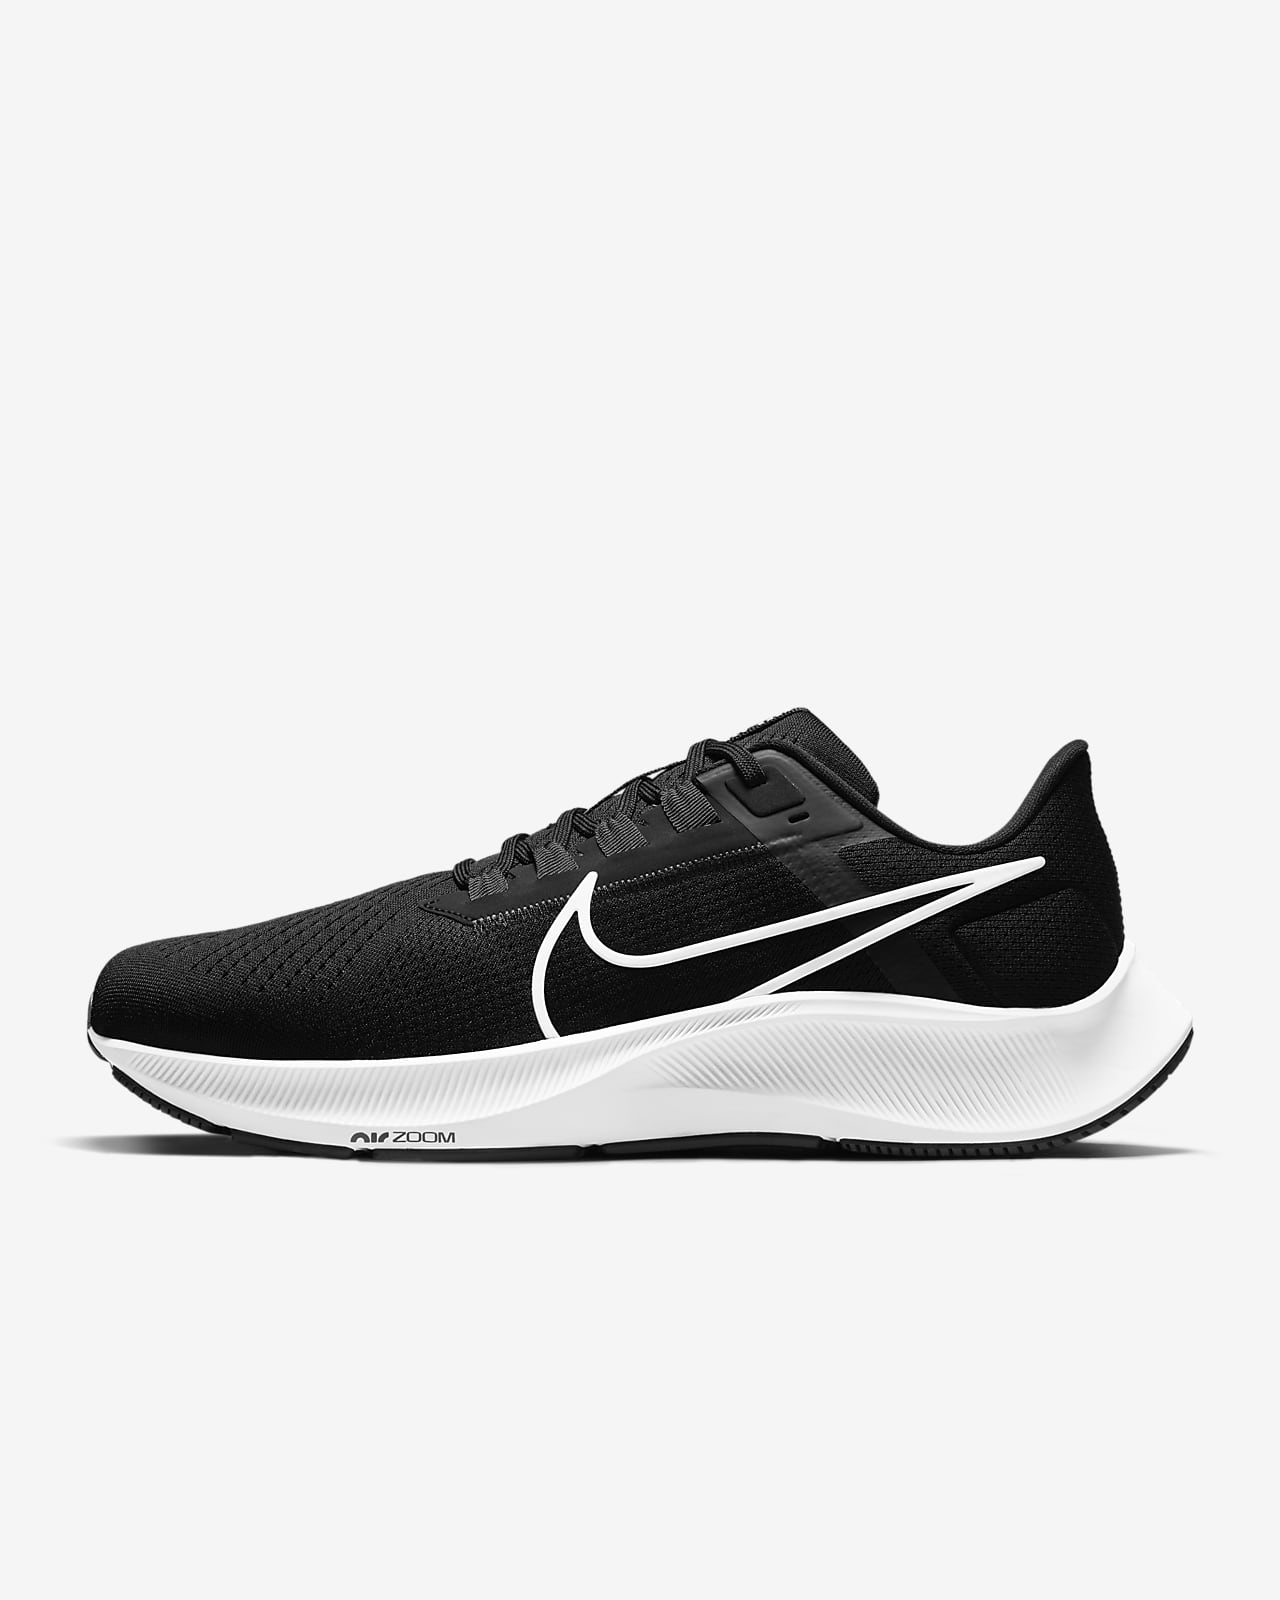 Chaussure de running Nike Air Zoom Pegasus 38 pour Homme (extra-large)